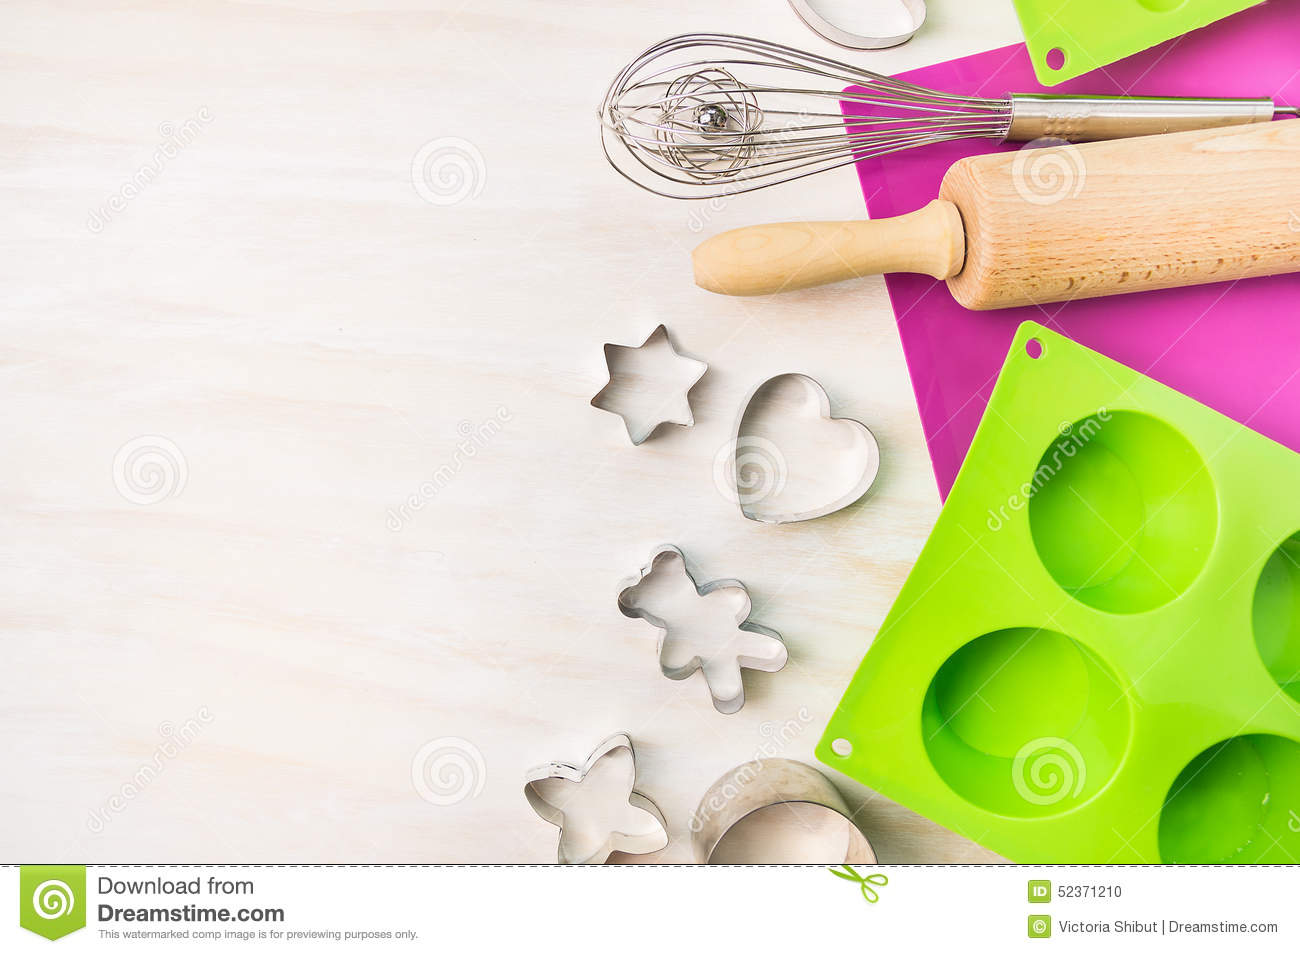 fun cookie bake flyer template stock vector image  christmas bake tools for cookie and cake mould for muffin and cupcake on white wooden background